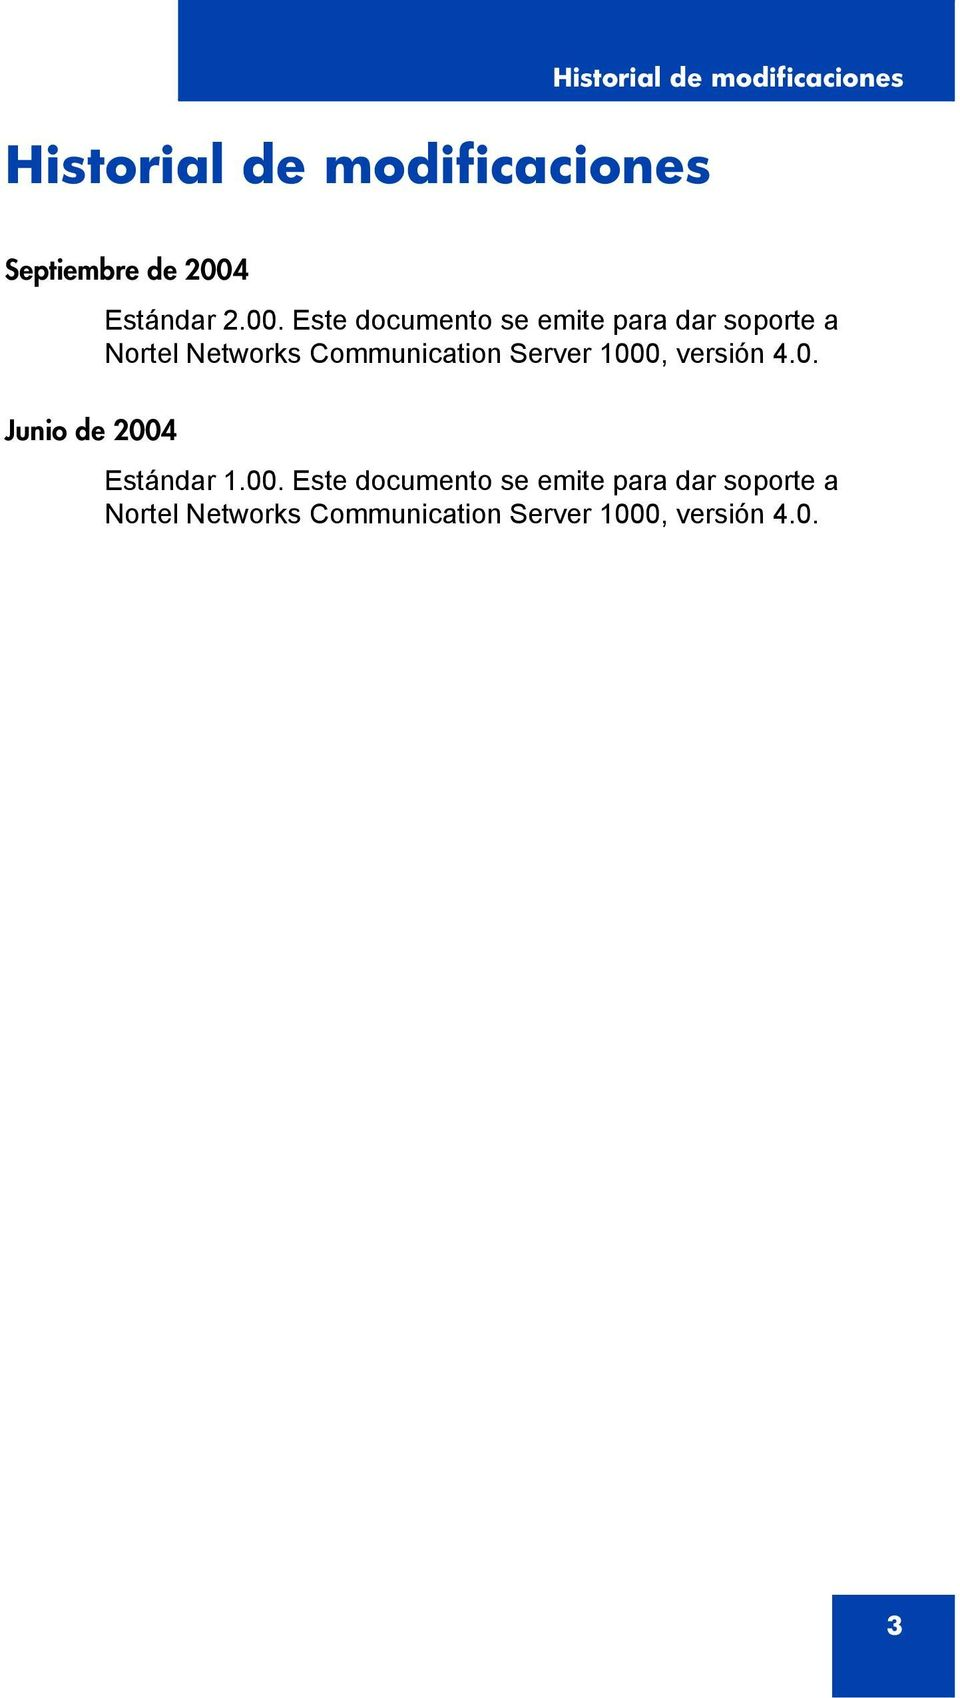 Este documento se emite para dar soporte a Nortel Networks Communication Server